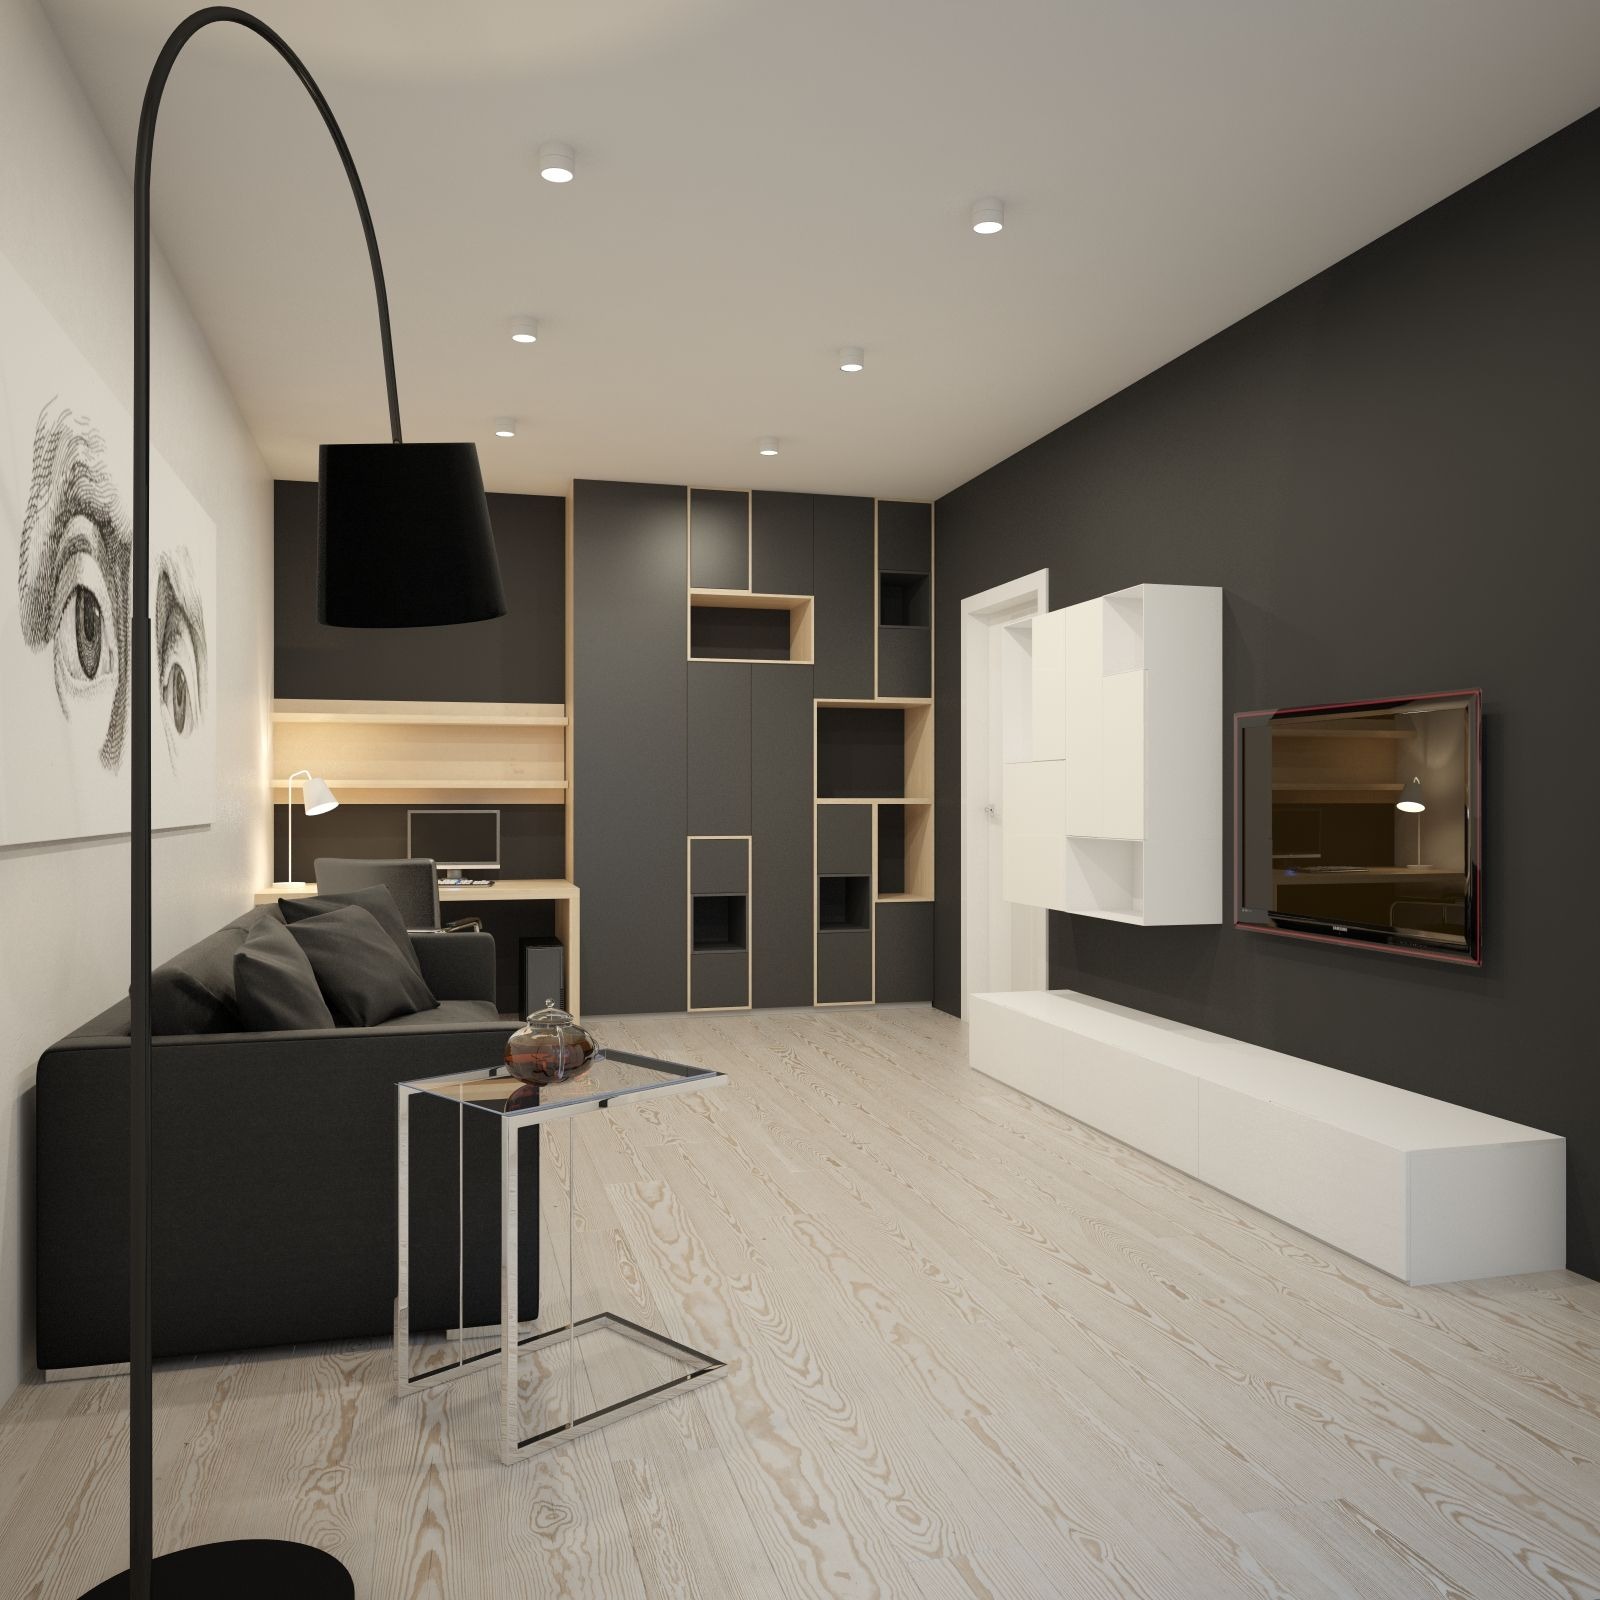 Living room with empty shelves house pinterest - Living rooms ...